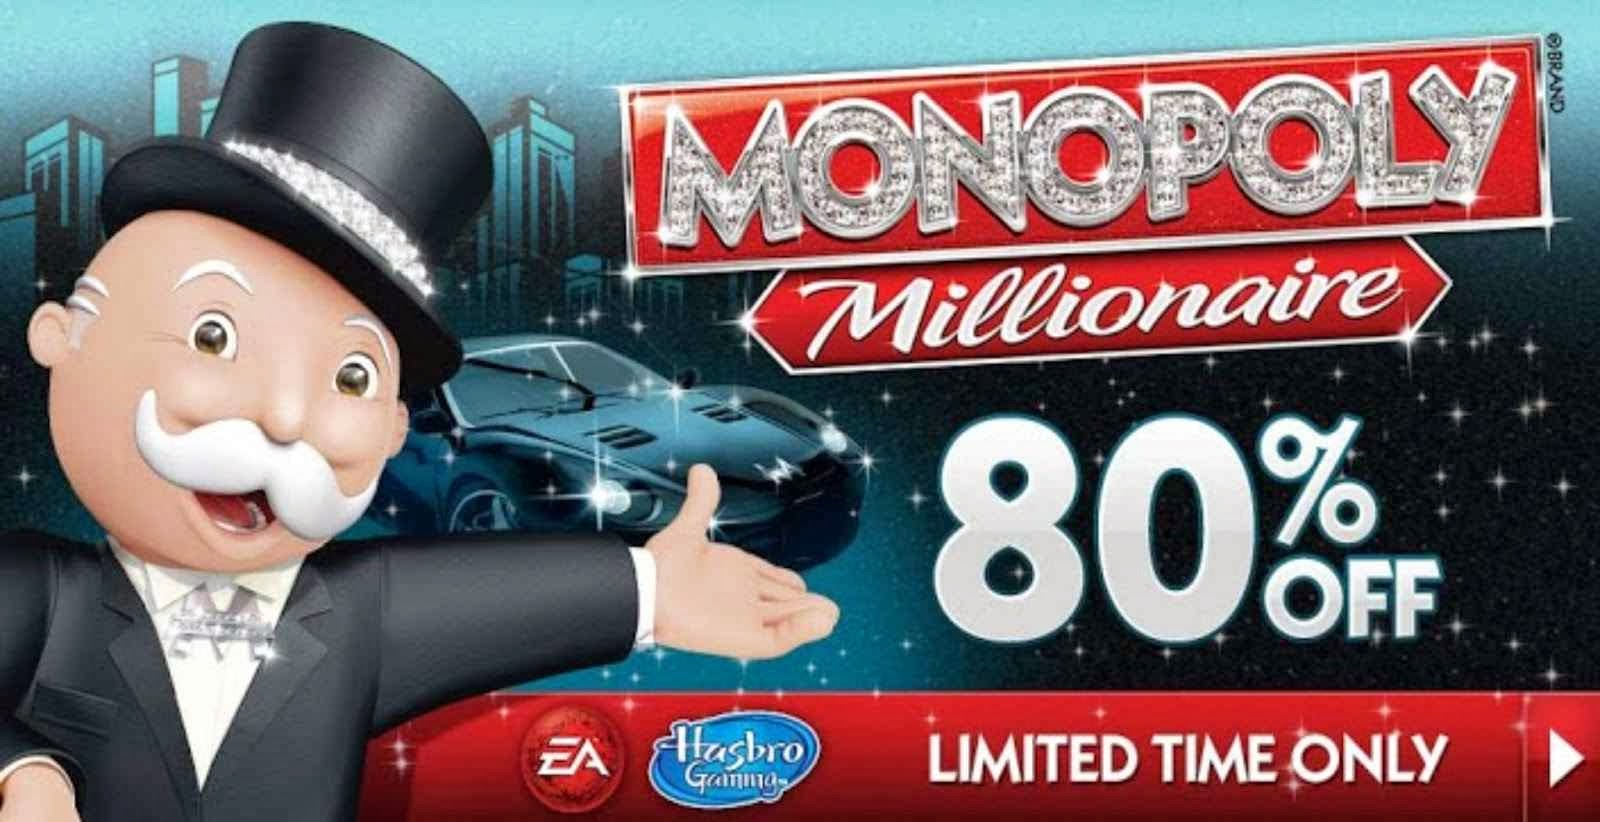 MONOPOLY Millionaire Data v1.7.4 Apk Full Download [Update]